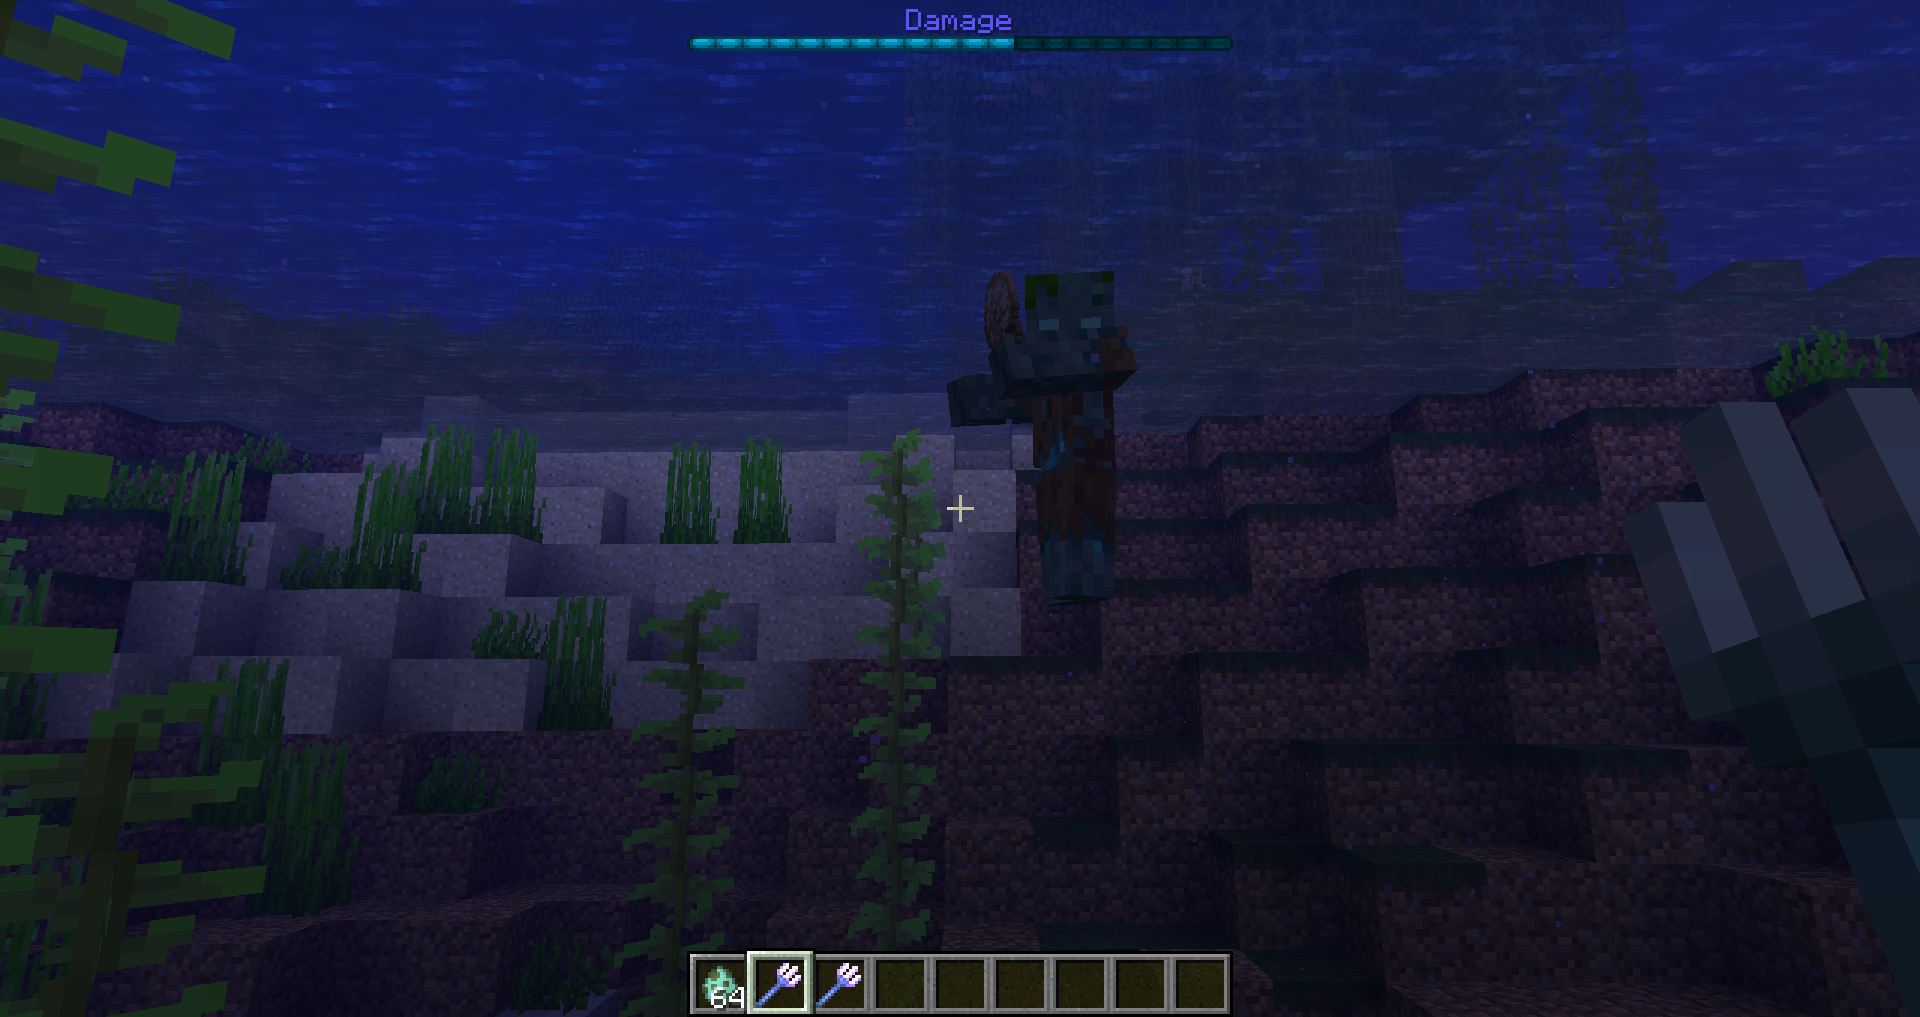 MC-129940] Drowned are not affected by the Impaling